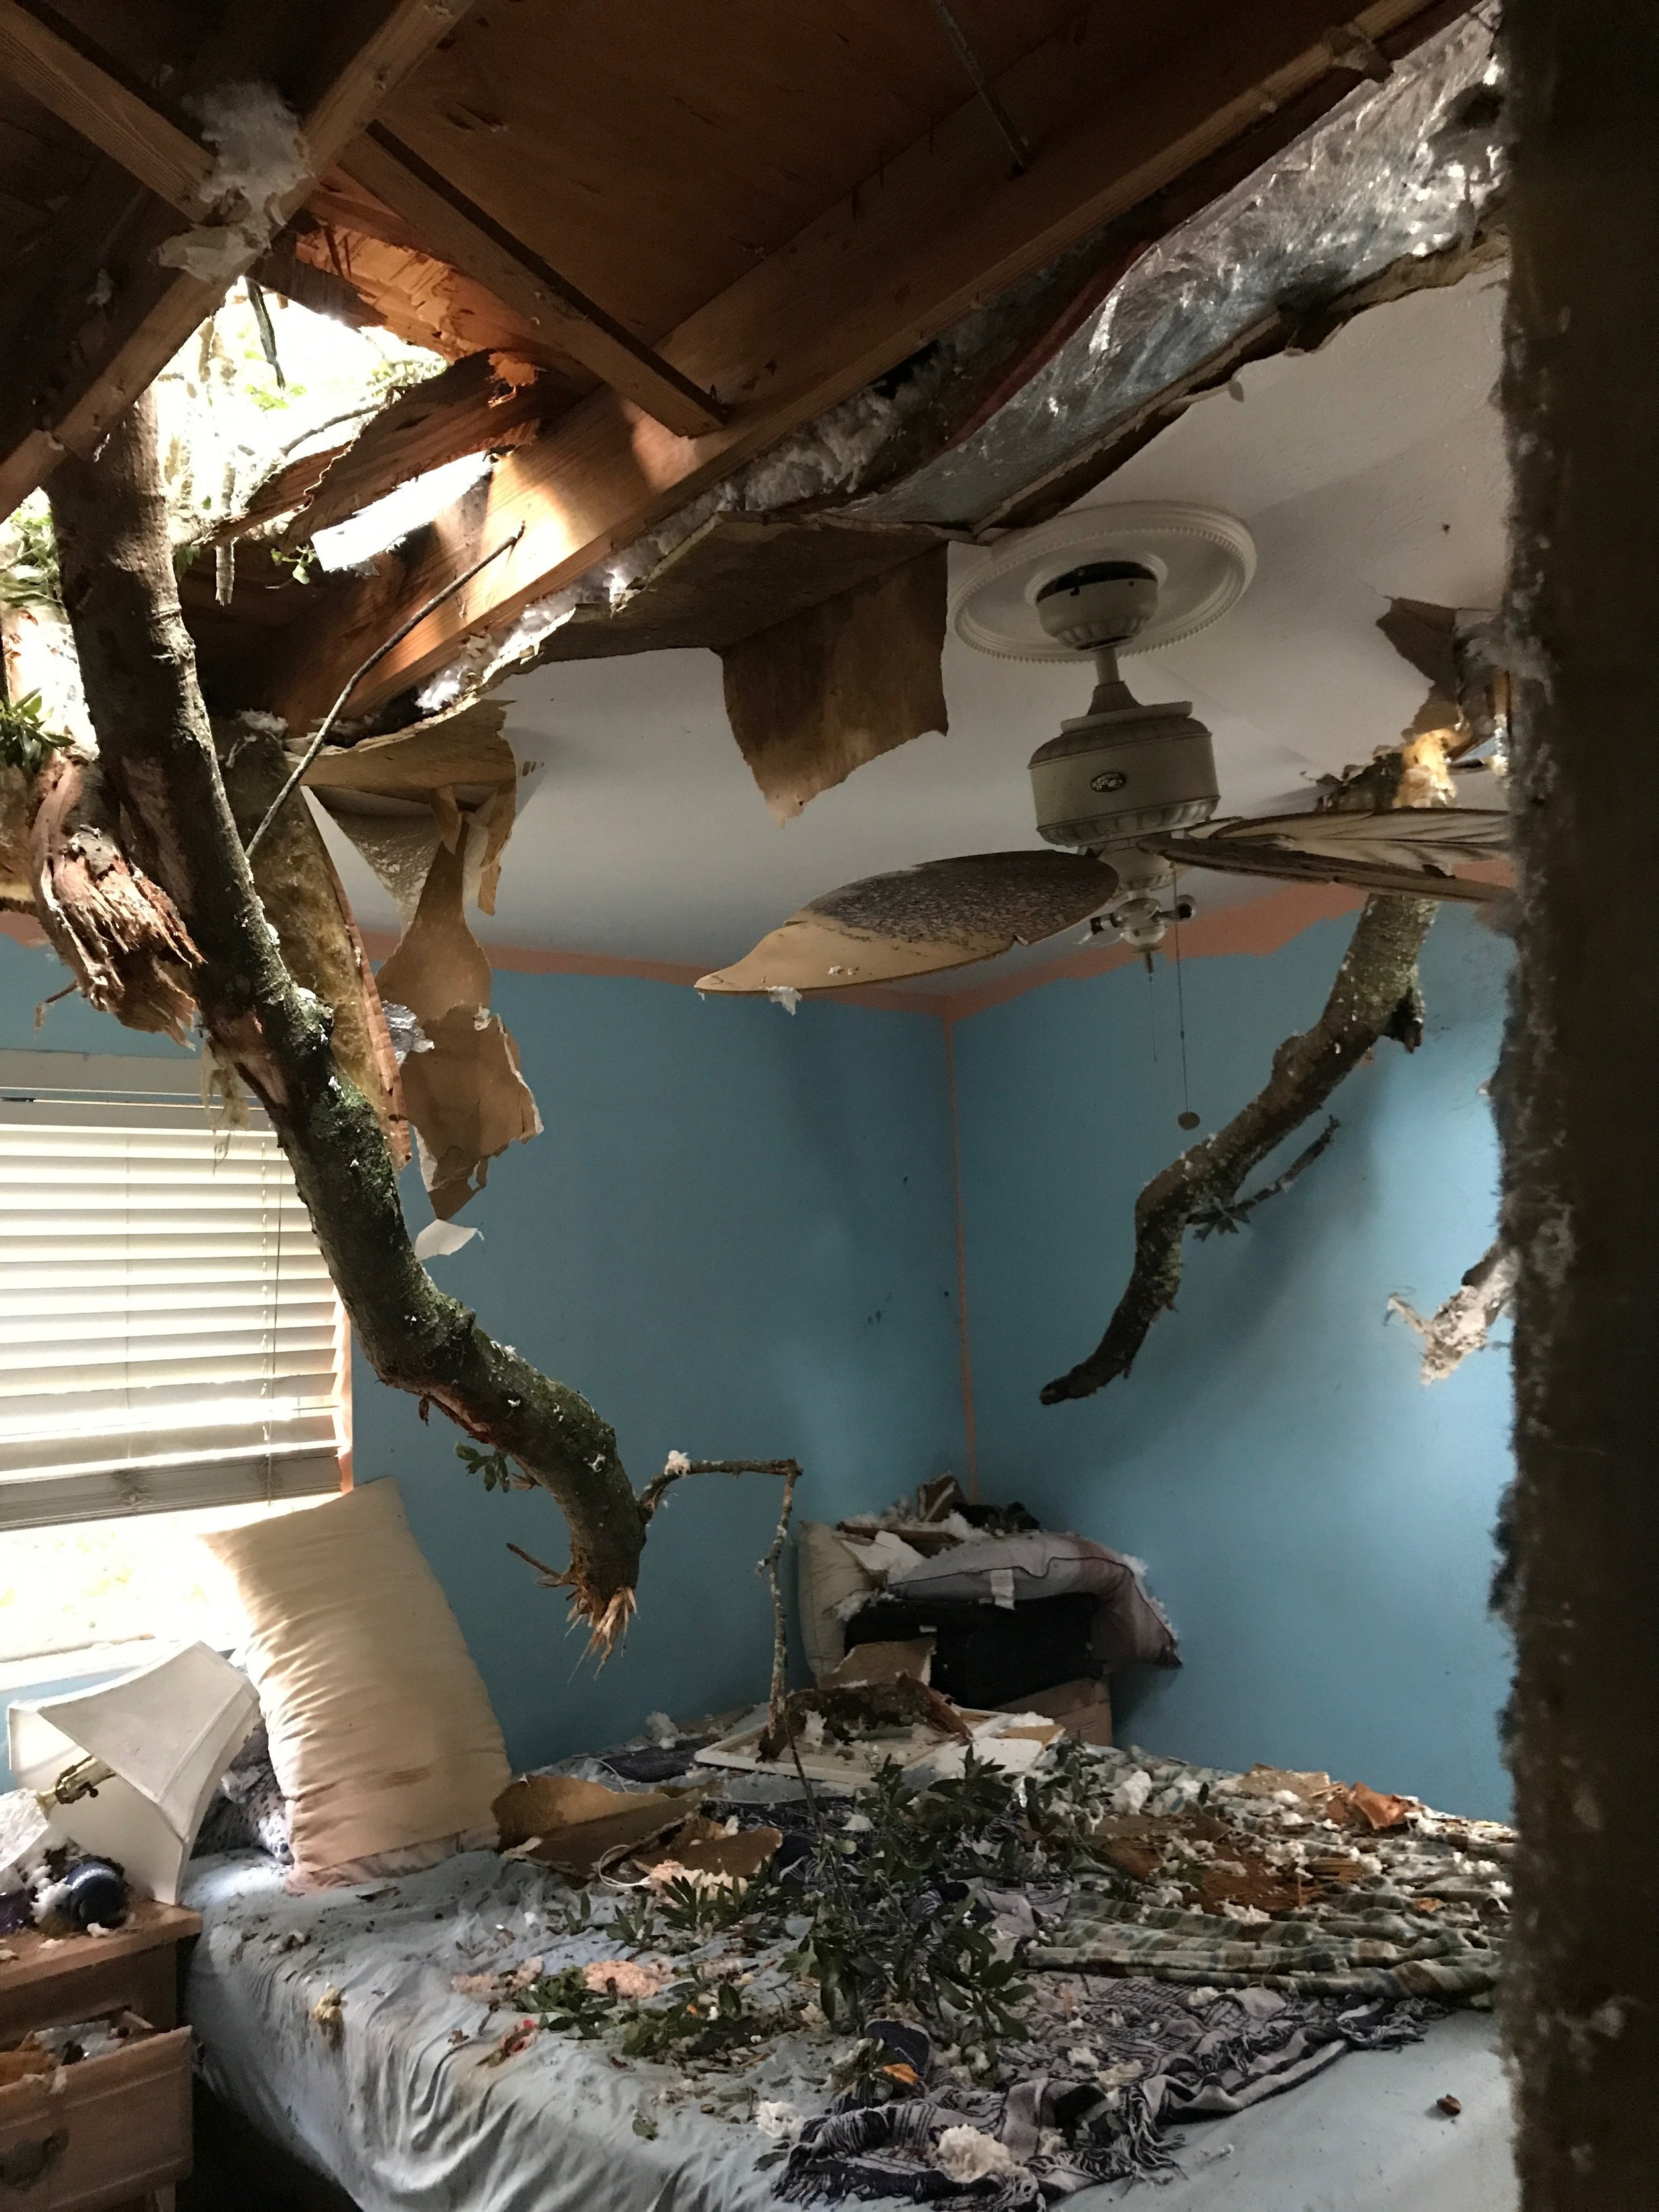 The lady who lives here is fighting for her life, the tree impaled her leg nearly killing her before she was able to be rescued..she had five Dachsunds which needed care, our friend is taking care of three of them..keep her in prayer